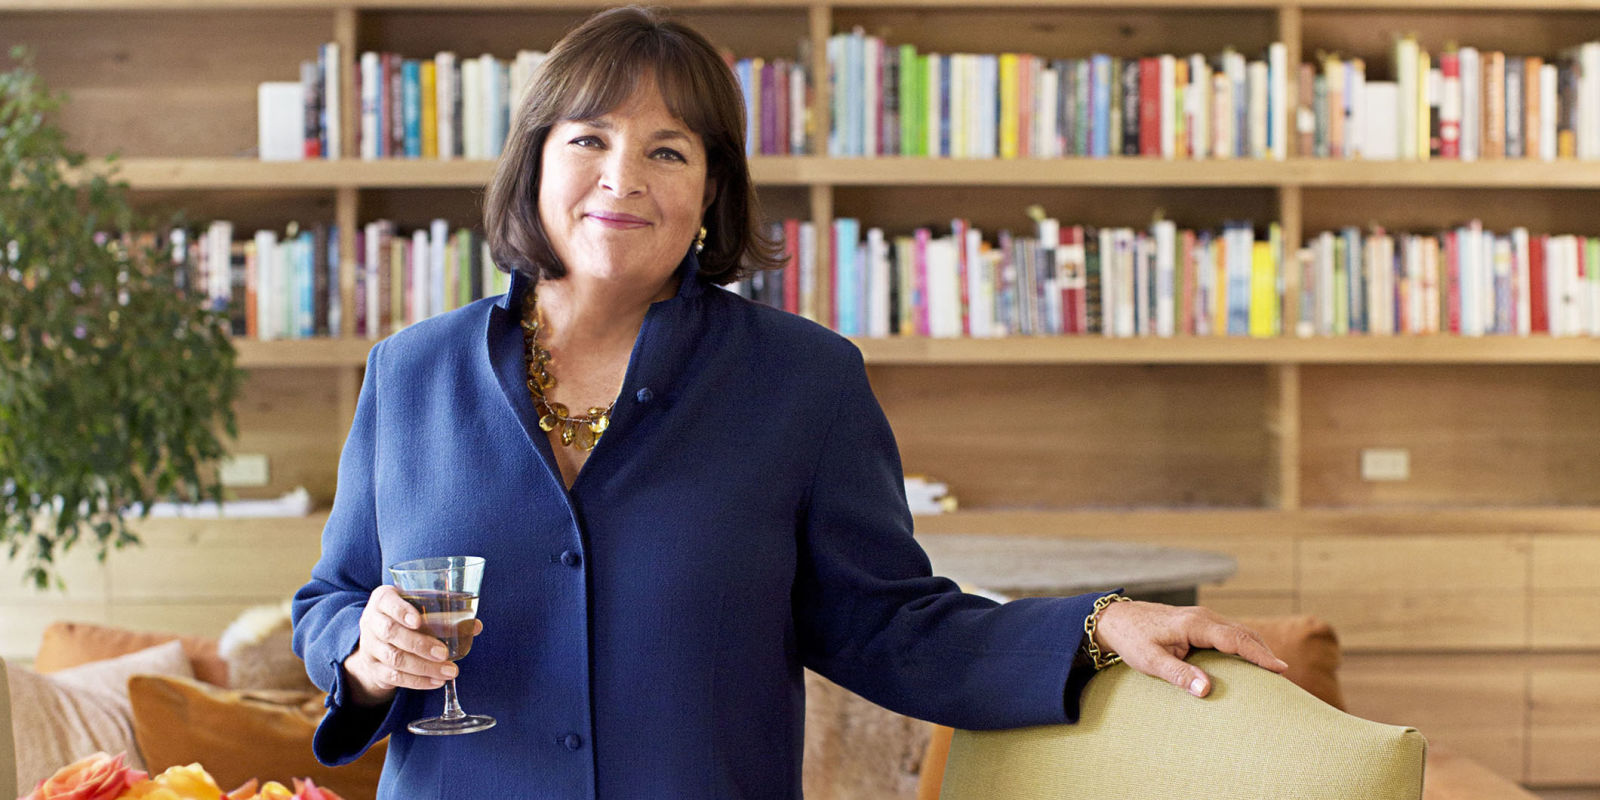 How Old Is Ina Garten Interesting 13 Things You Never Knew About Ina Garten  Ina Garten Facts 2017